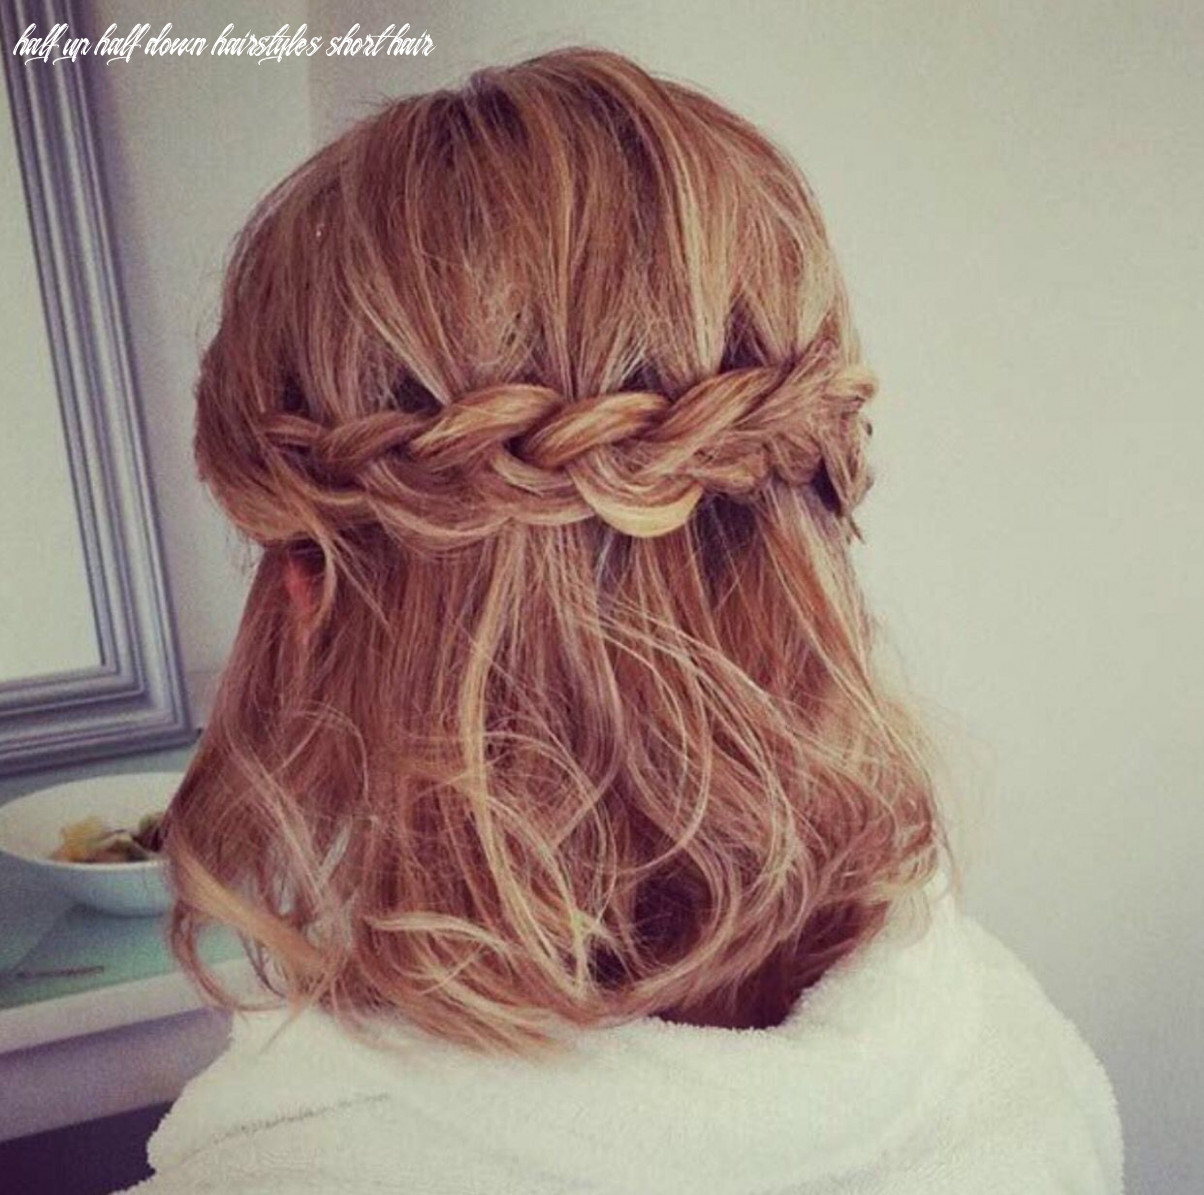 Pin by y on hair | prom hairstyles for short hair, short hair